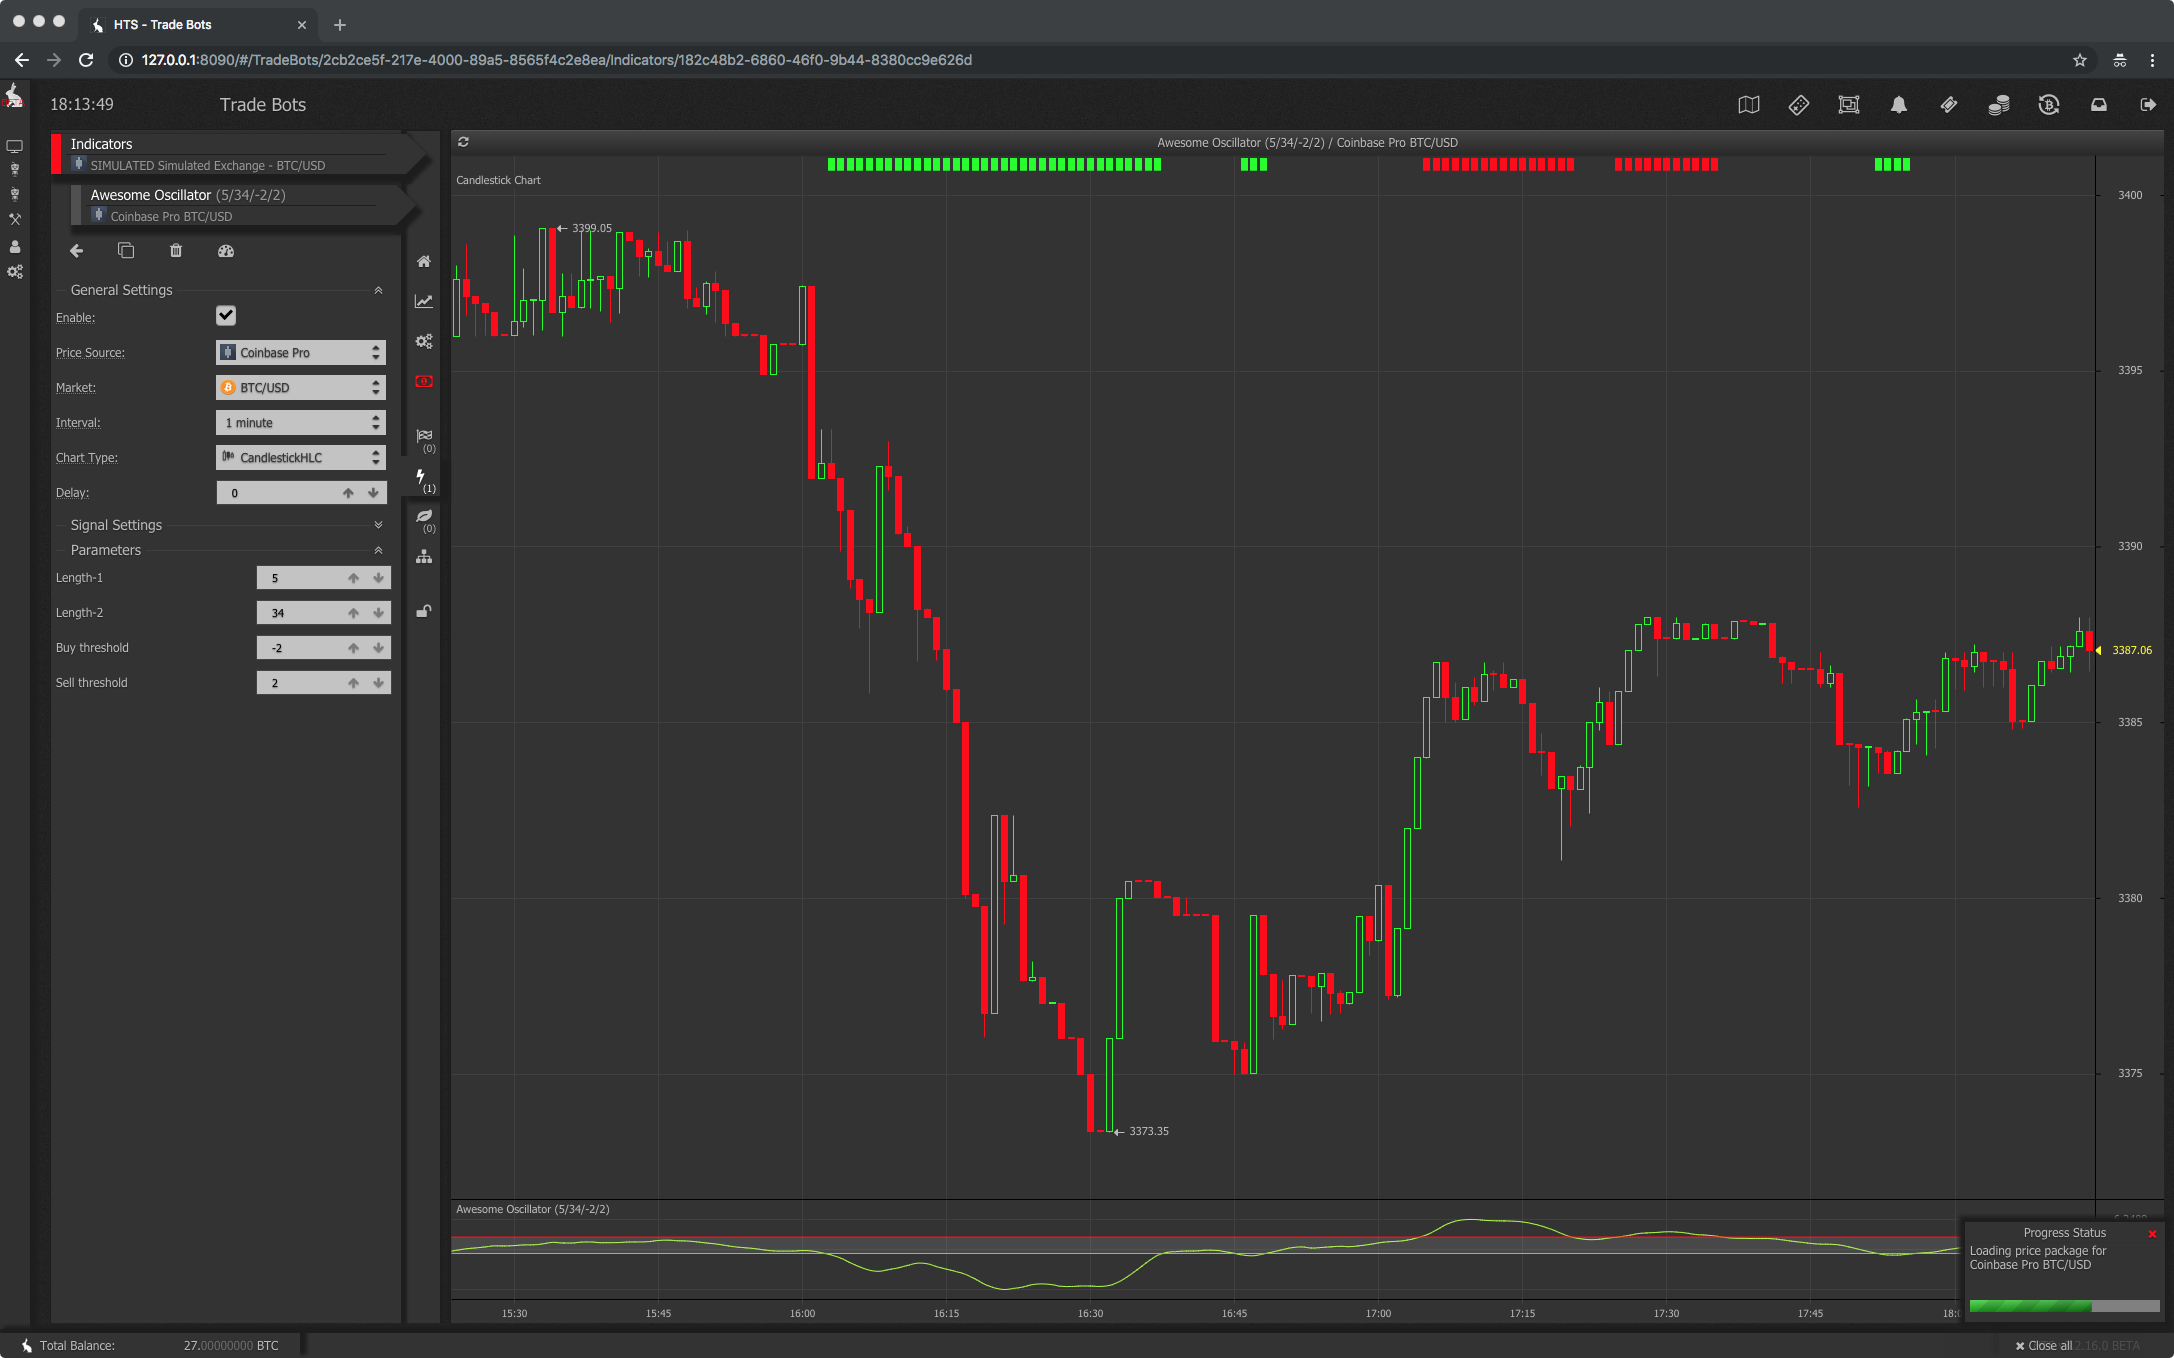 Awesome oscillator trade bot technical indicator